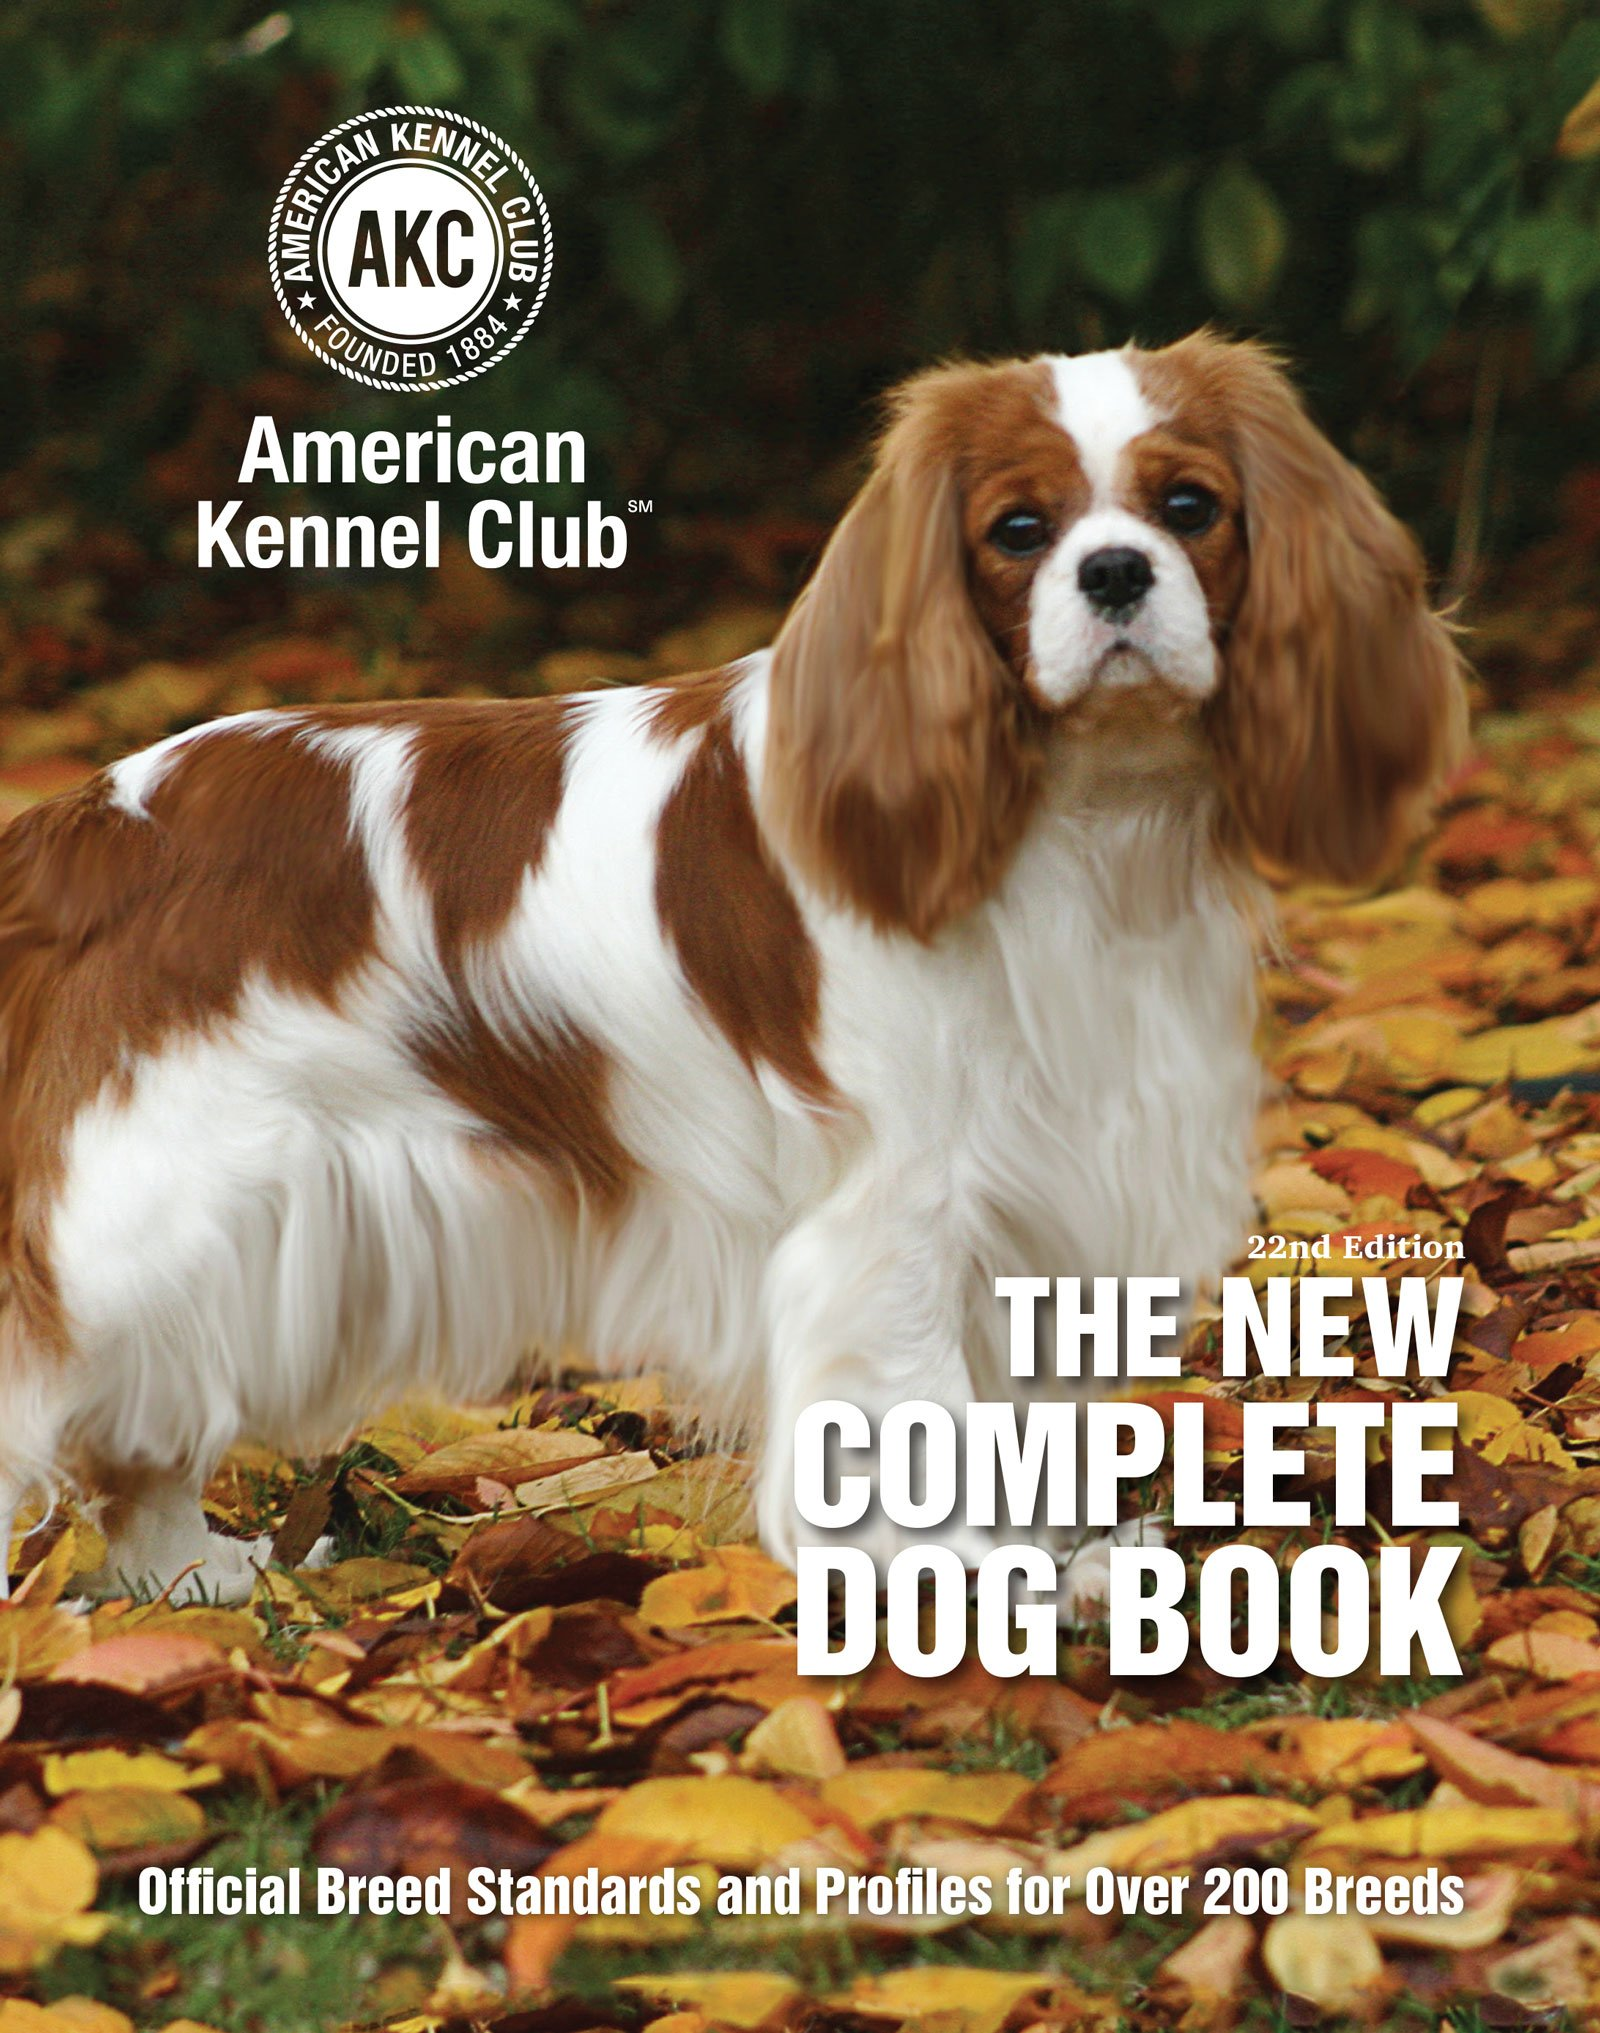 New Complete Dog Book Standards product image